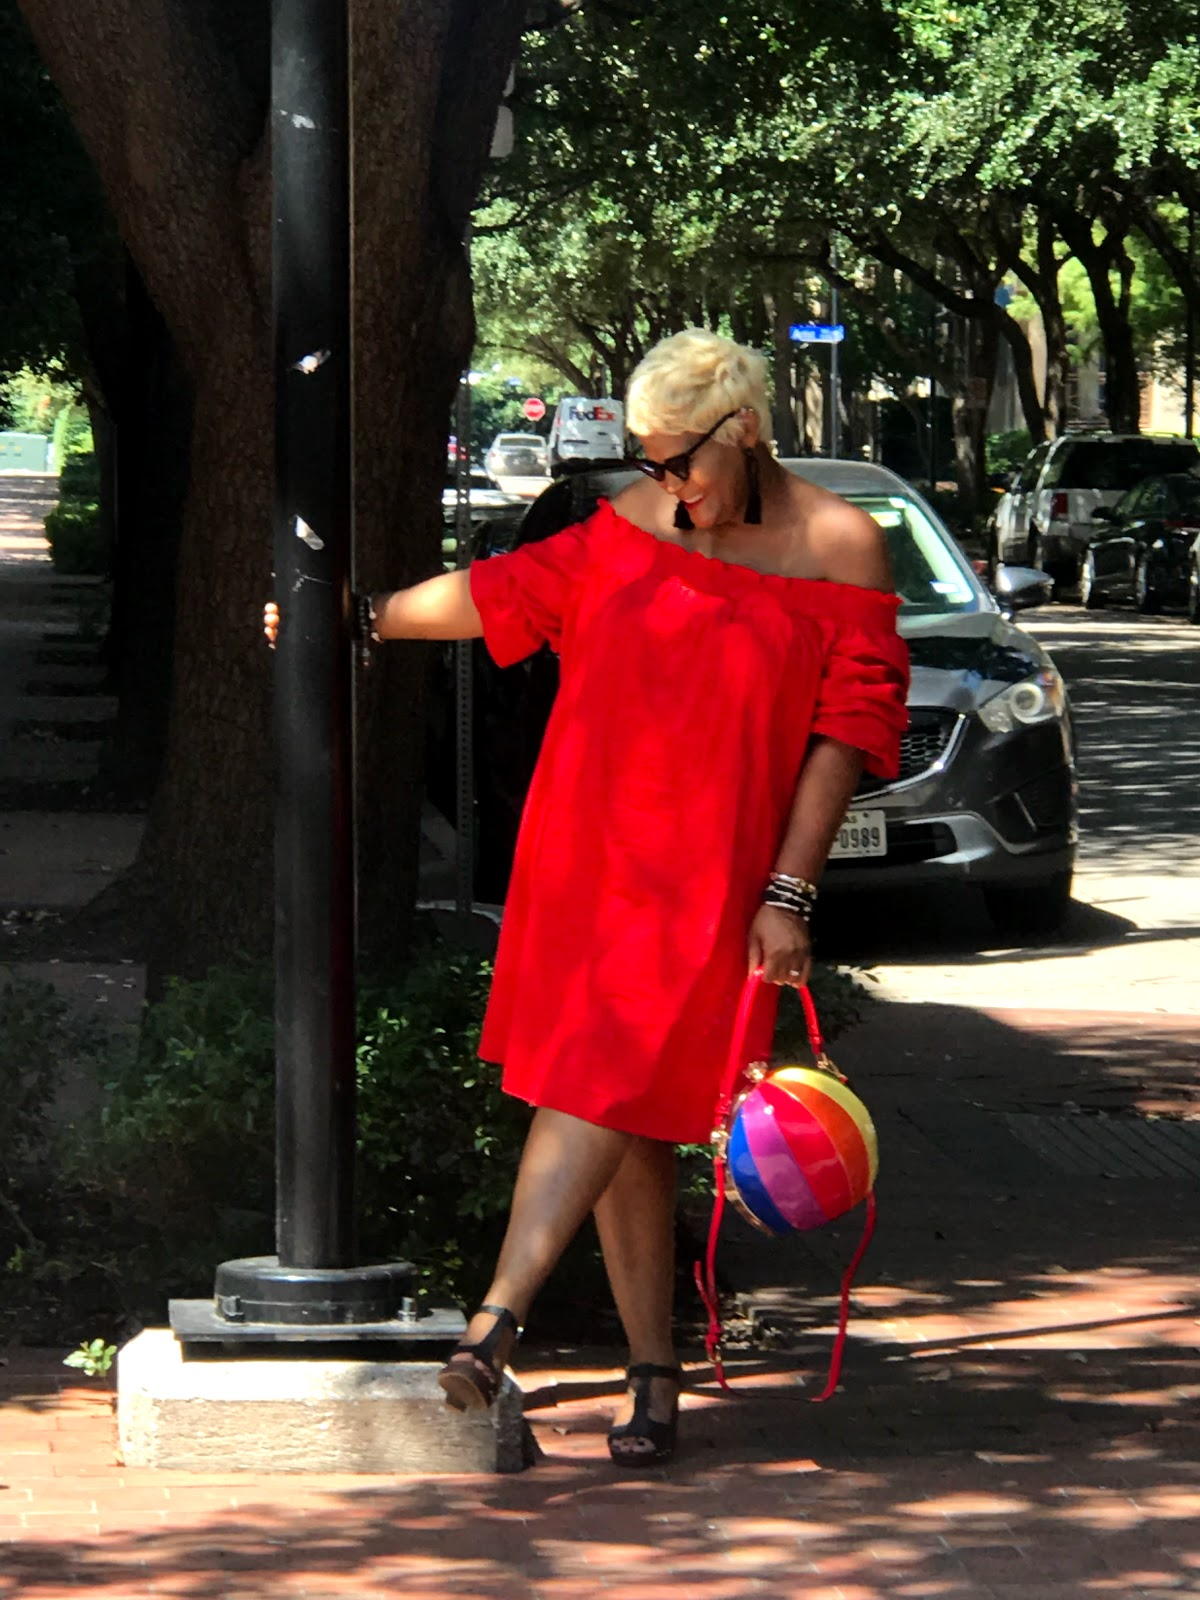 Image:Woman wearing Red dress posing in outfit with balloon purse. Seen first on Bits Babbles by Tangie Bell